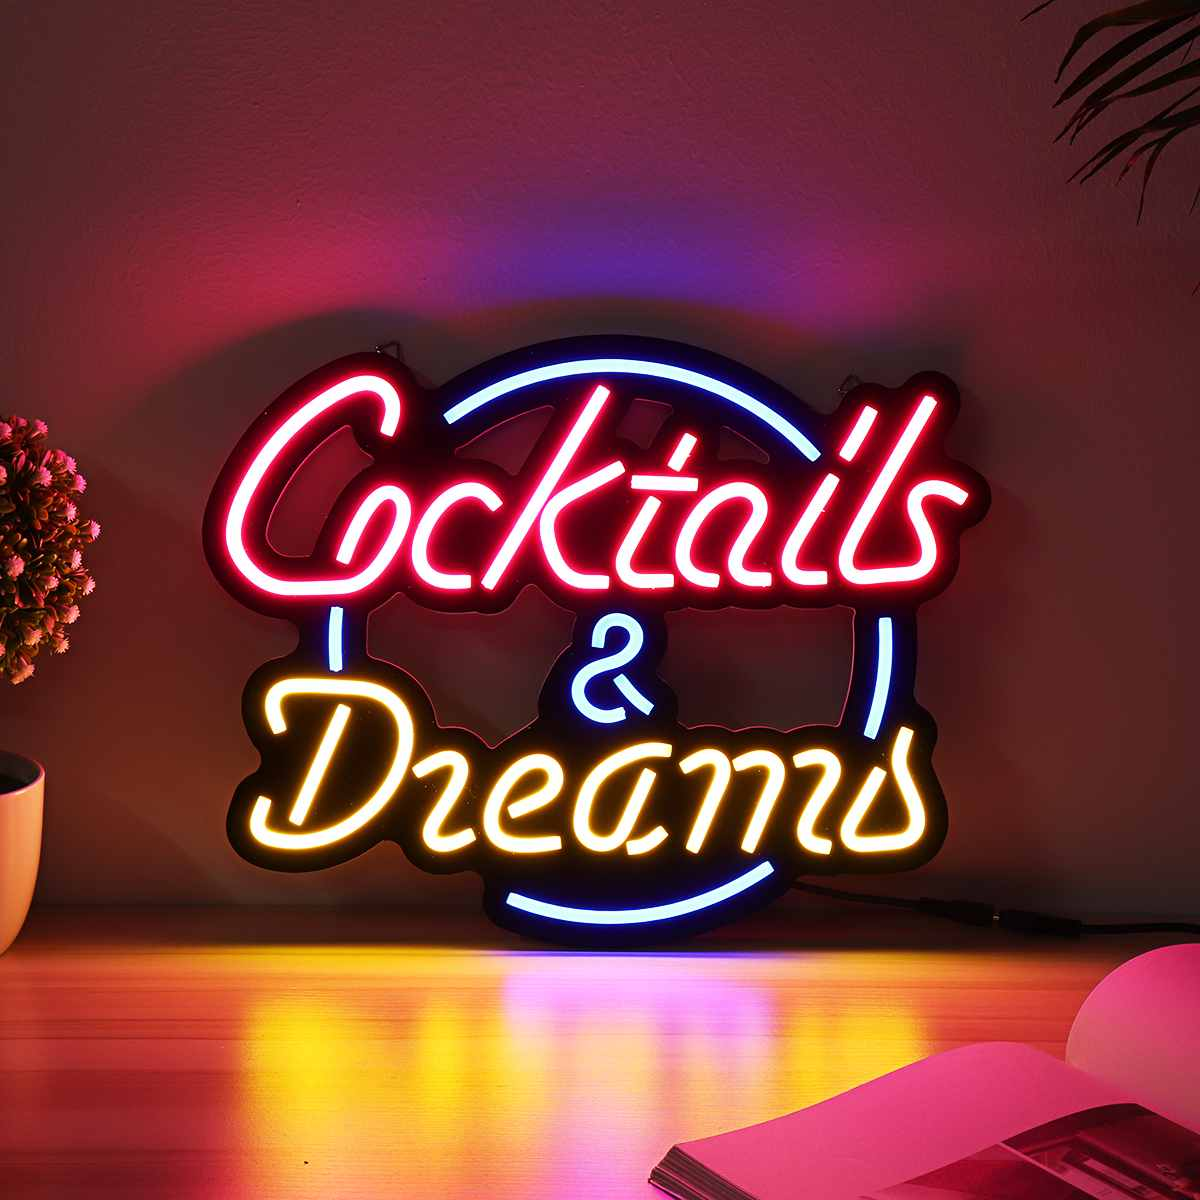 """New Cocktails And Dreams Neon Light Sign 17/""""x14/"""" Beer Cave Gift Bar Real Glass"""